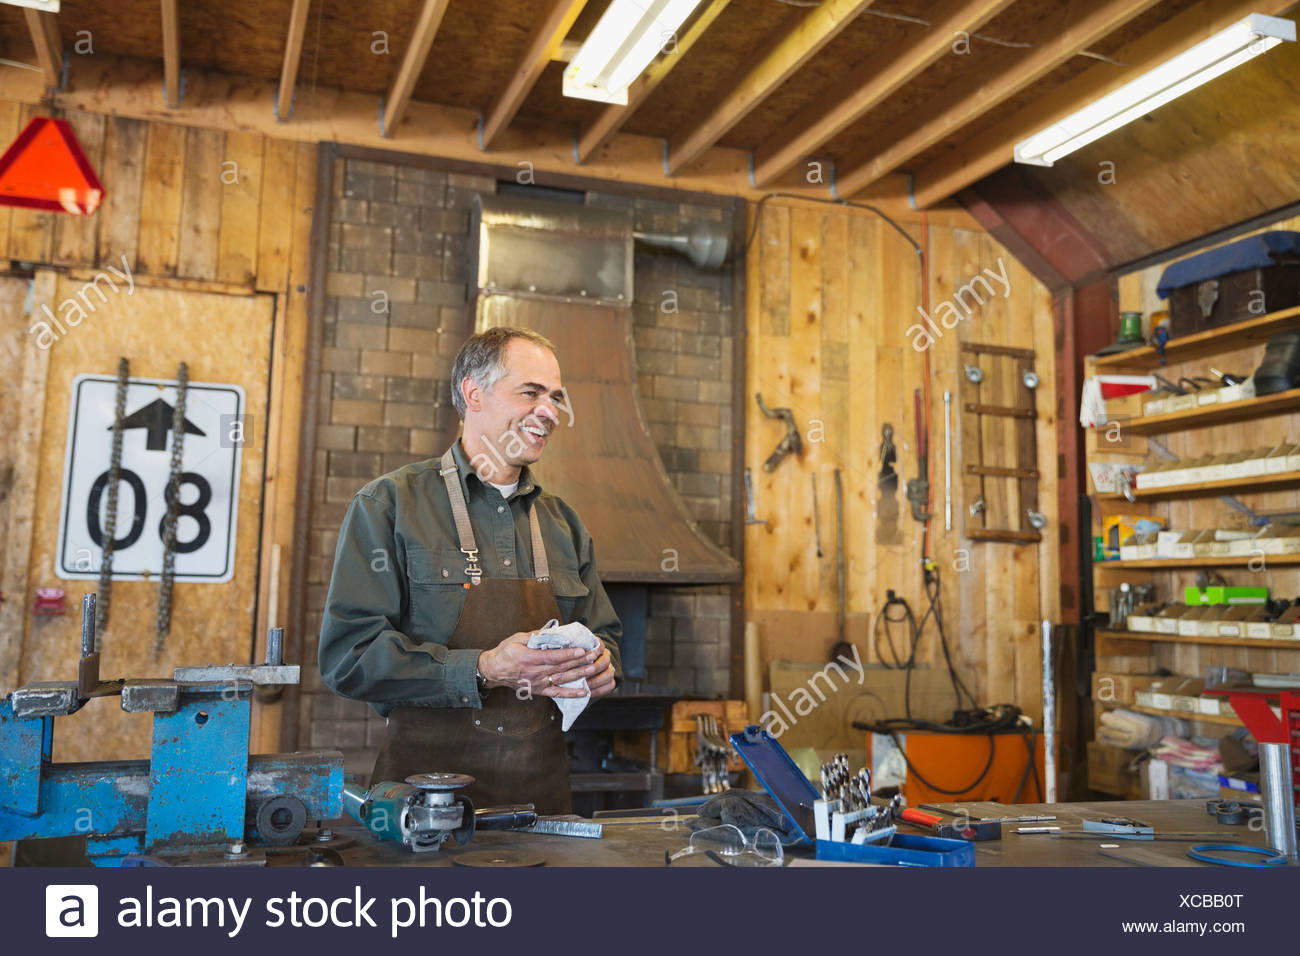 Metalworker cleaning up at workbench - Stock Image